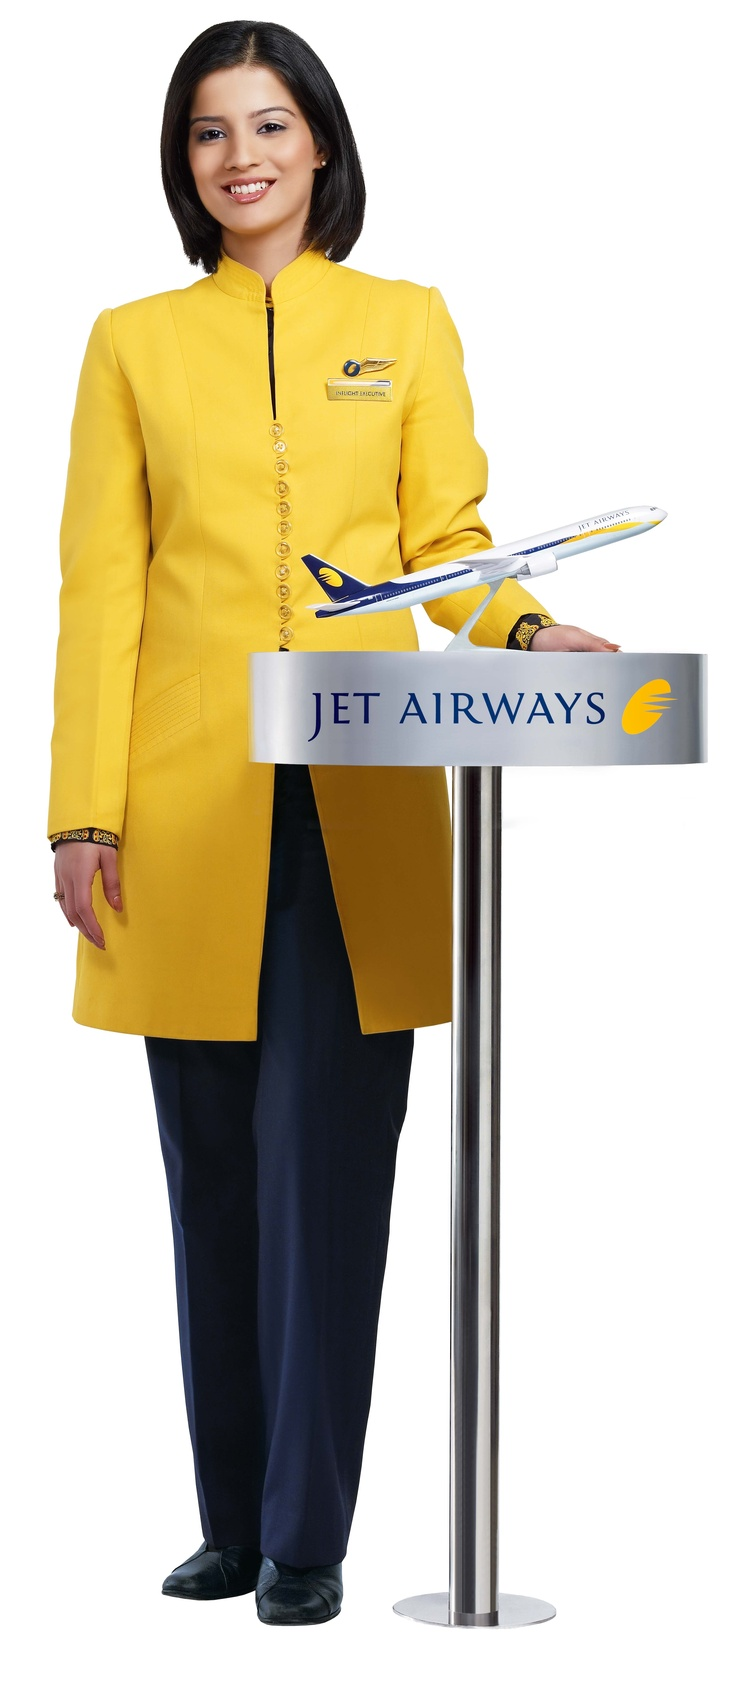 Proud to be associated with Jet Airways!